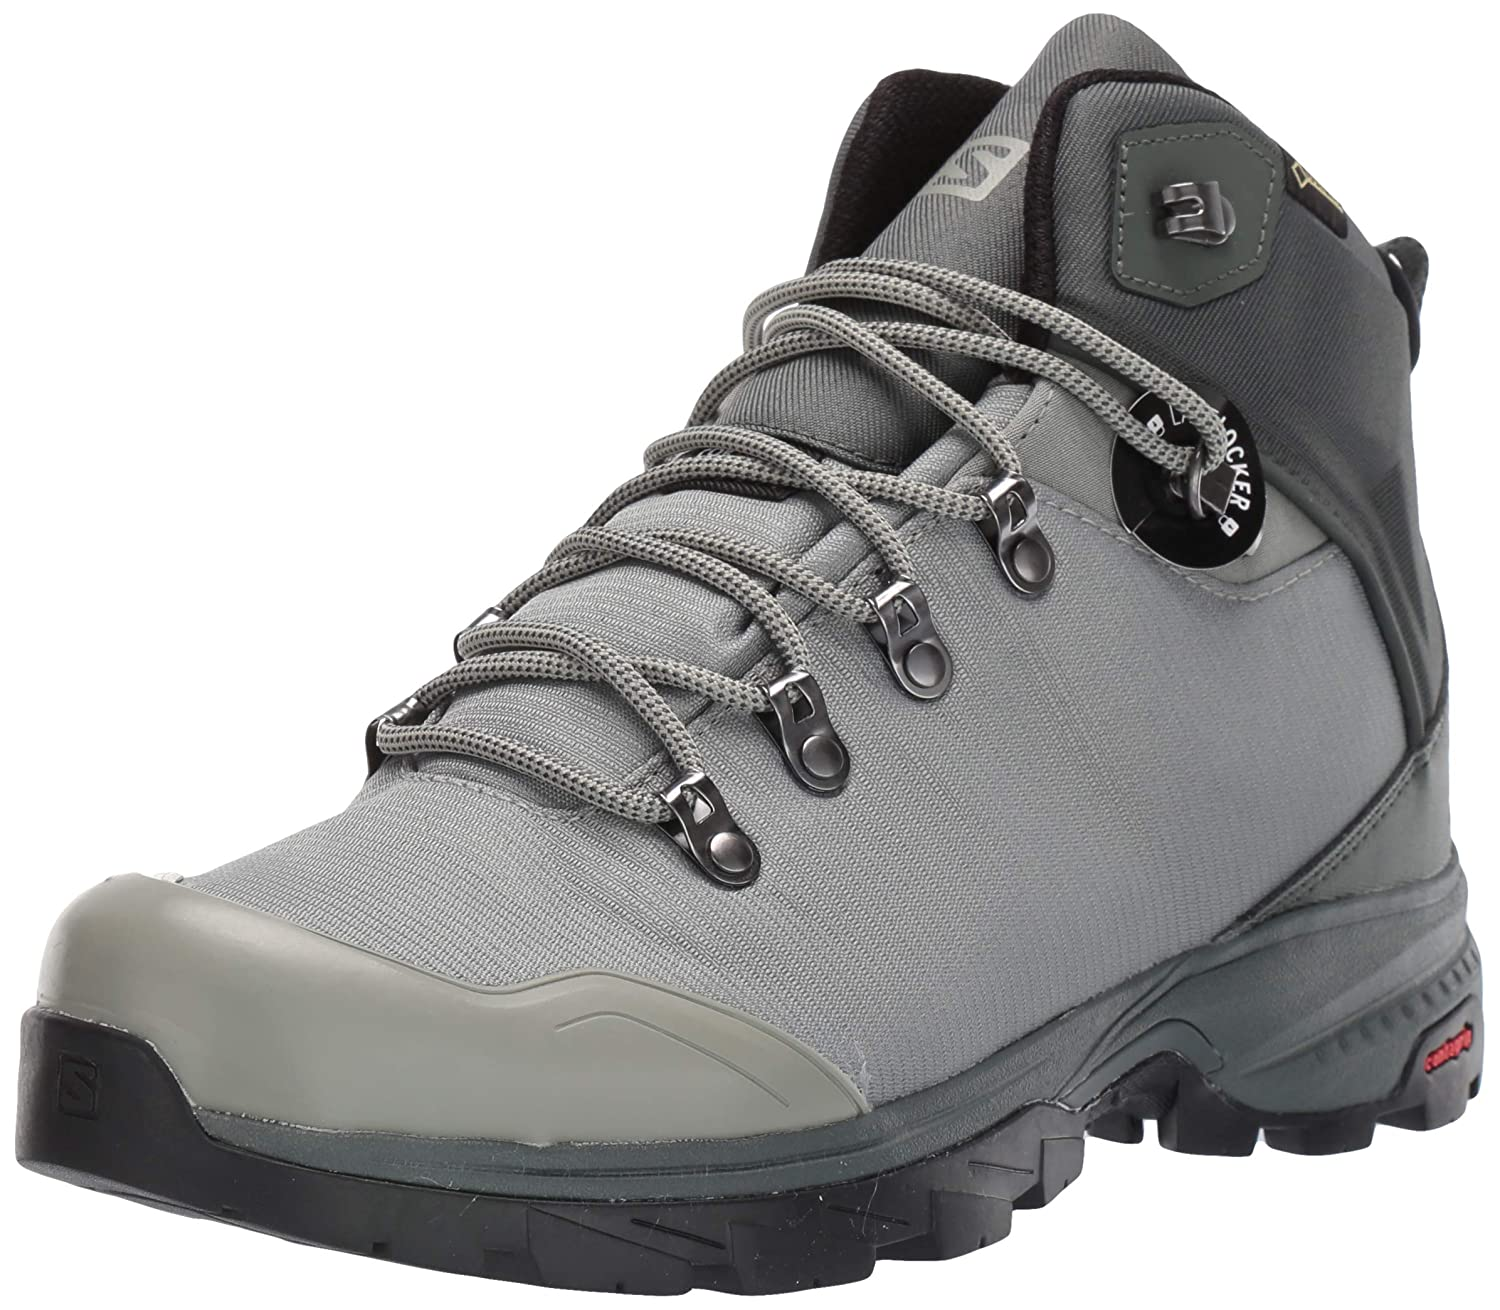 Image of Backpacking Boots Salomon Women's Outback 500 GTX Backpacking Boots